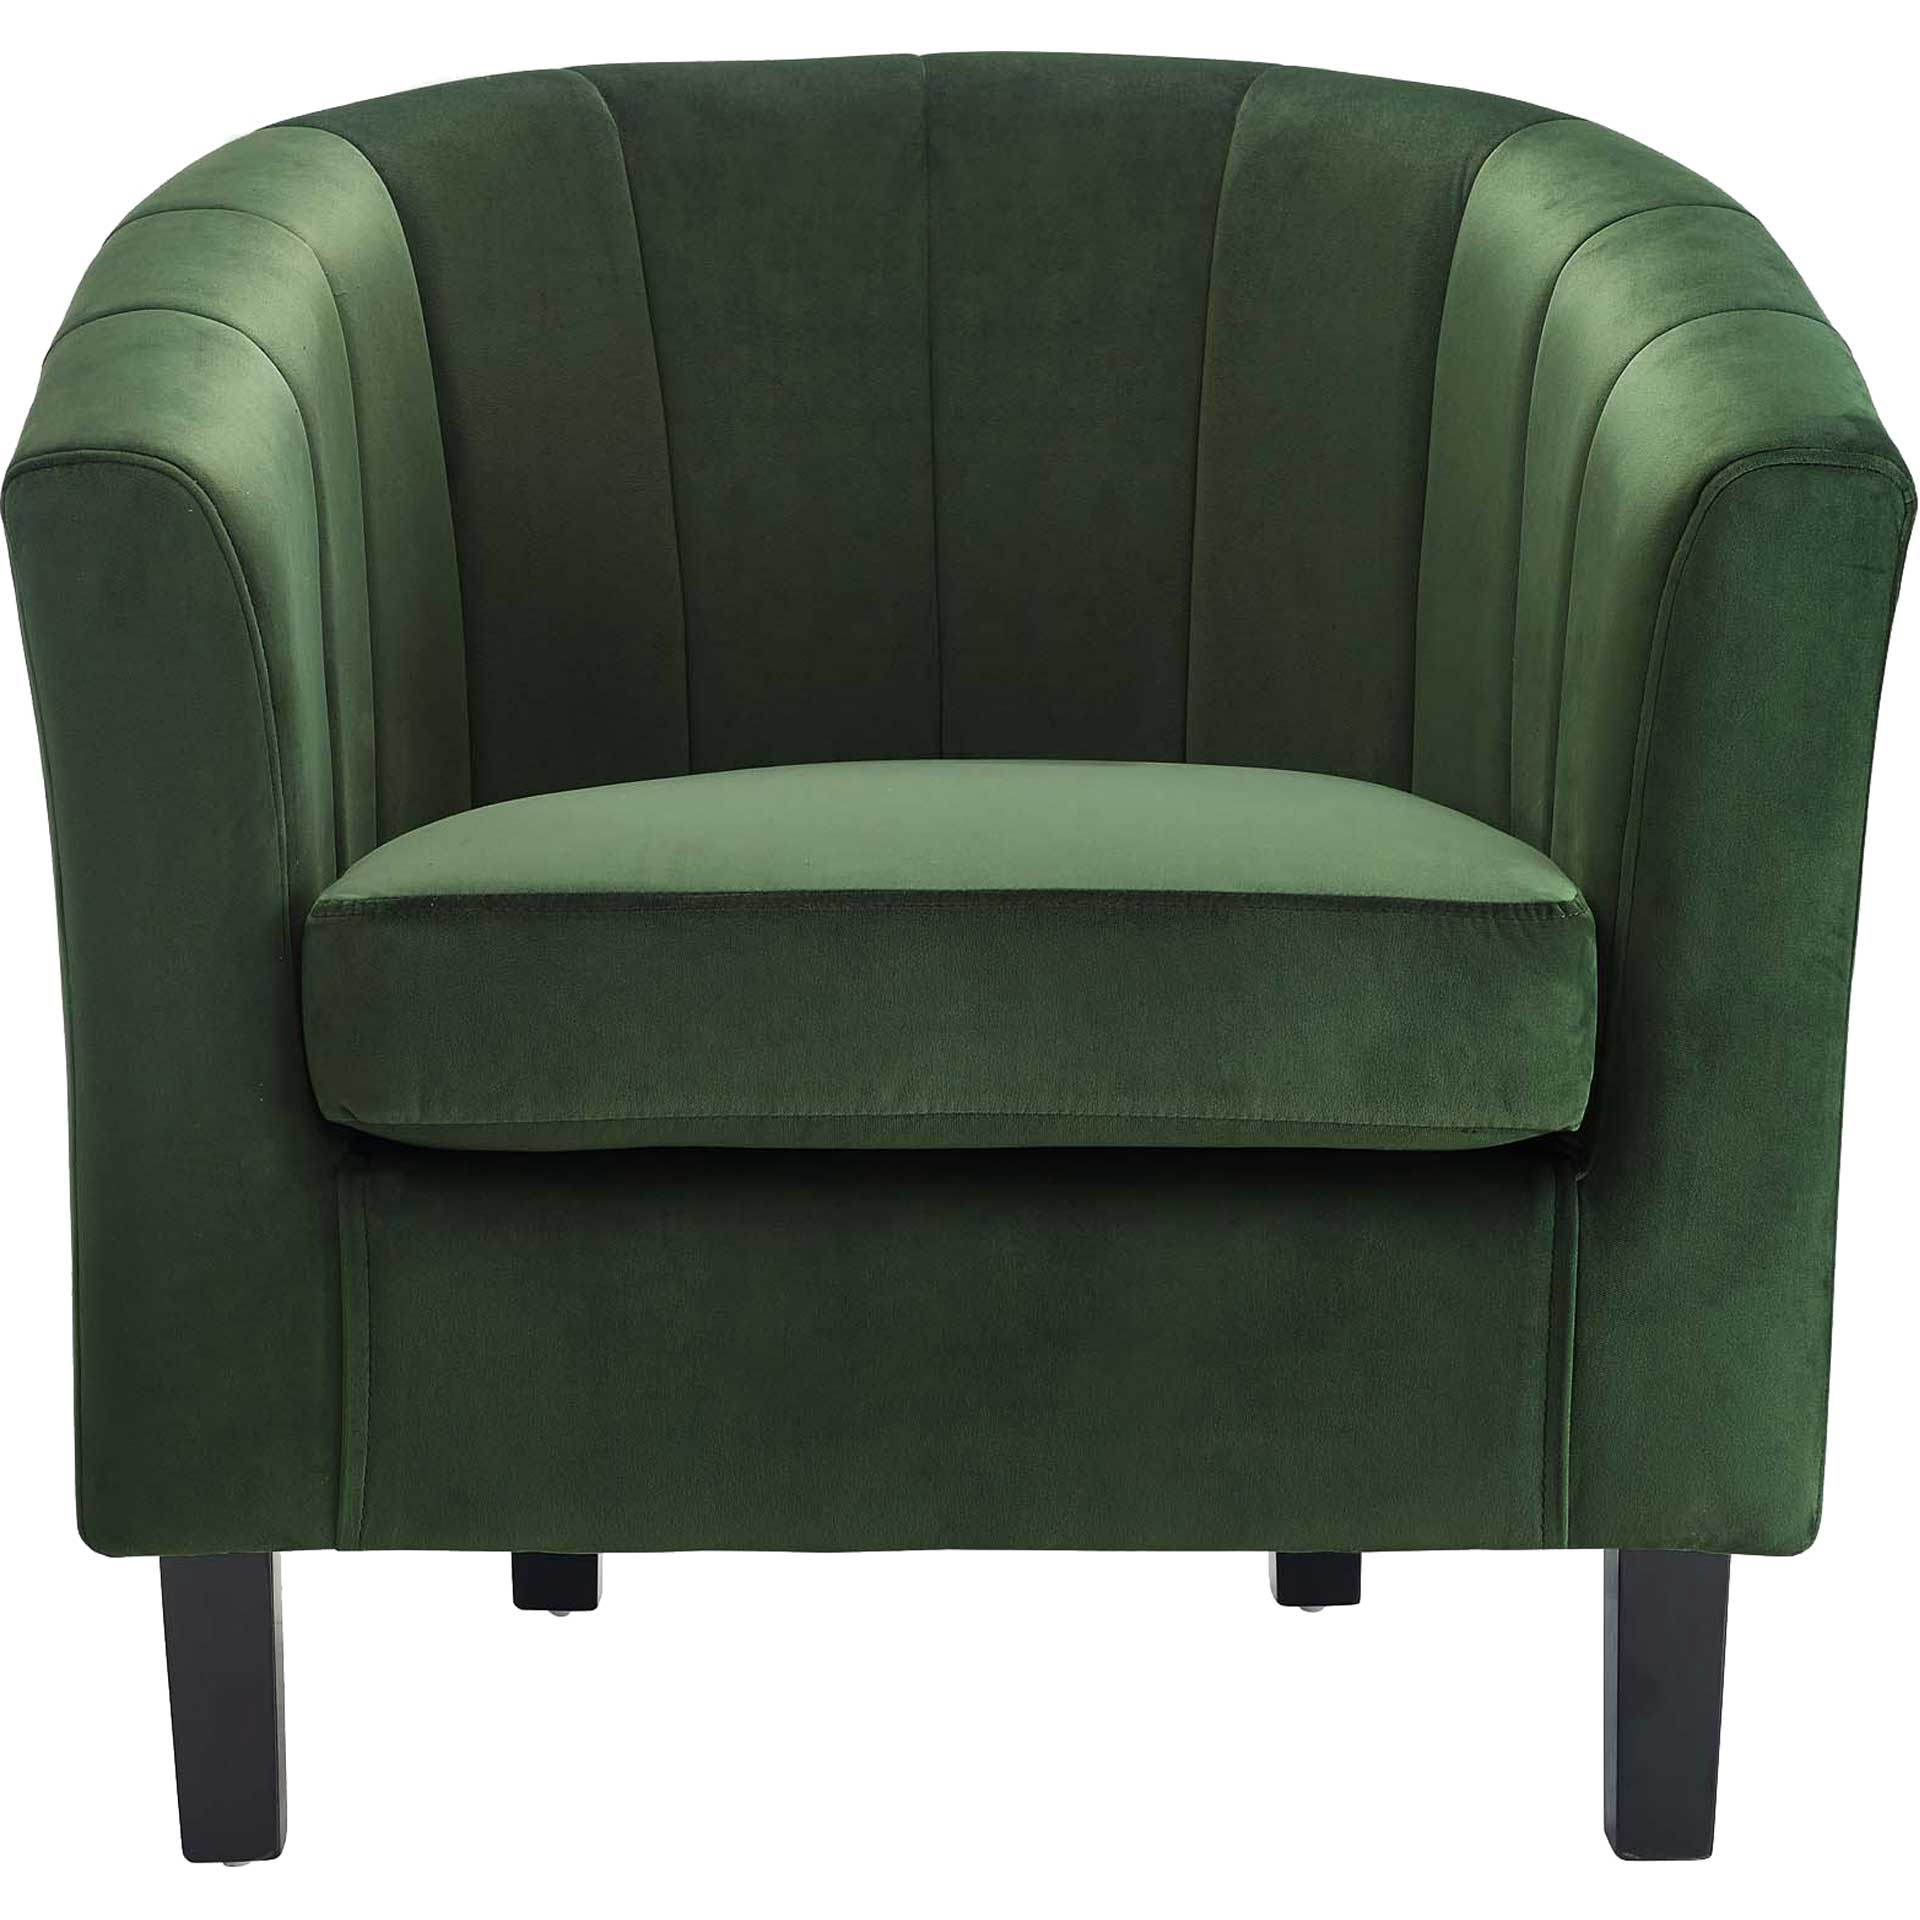 Paloma Channel Tufted Velvet Armchair Emerald